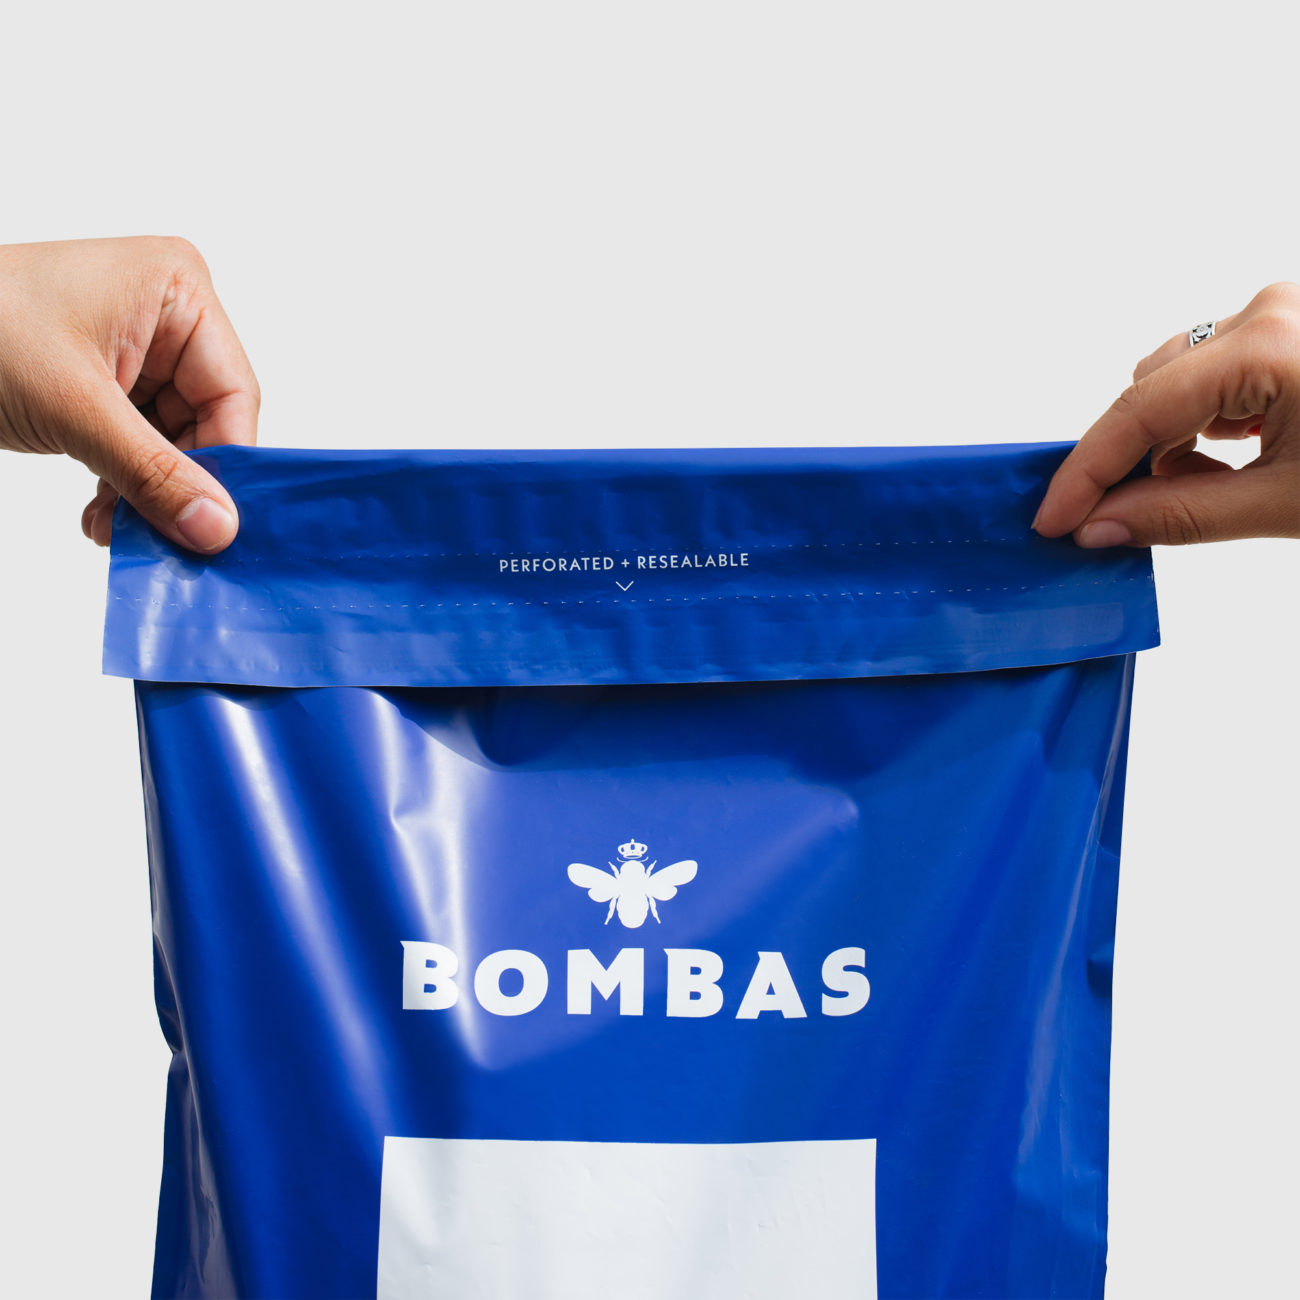 Bombas uses Lumi to produce returnable mailers with double perforations and resealable strips Release Notes: 7 New Sustainability Properties to Reduce and Reuse Packaging